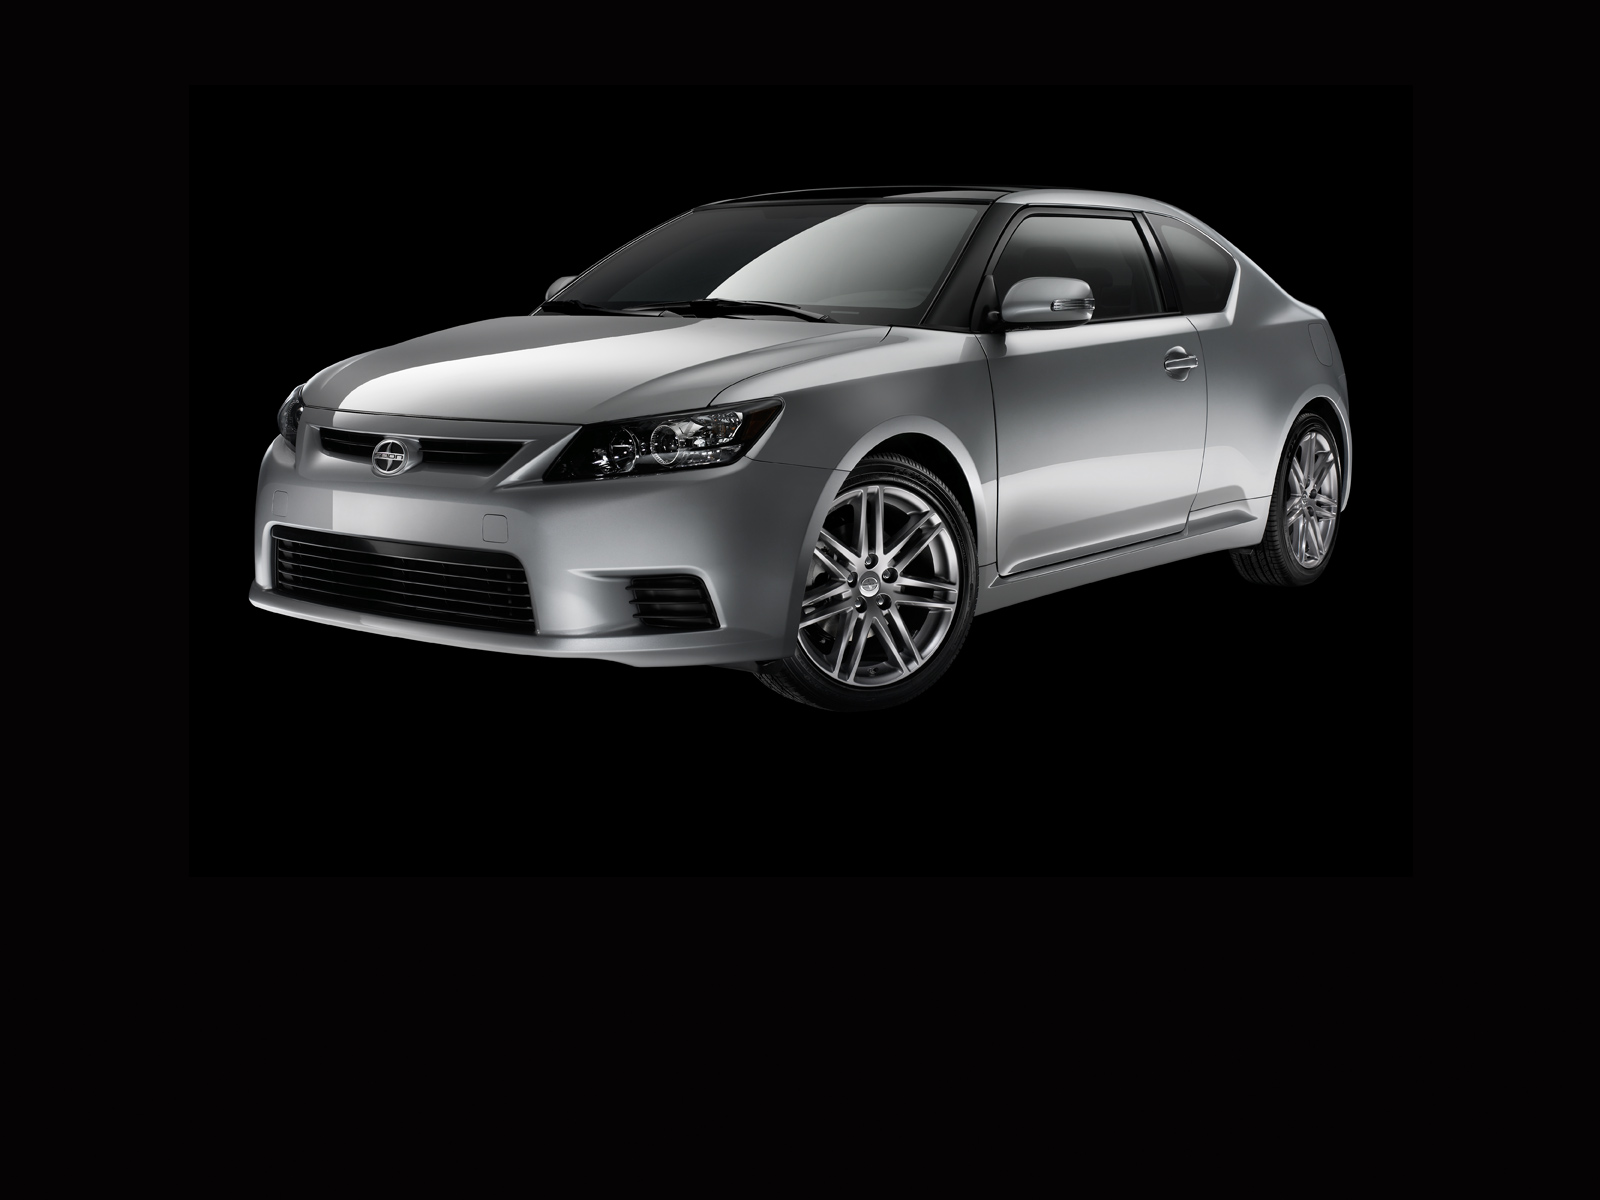 Home / Research / Scion / tC / 2013